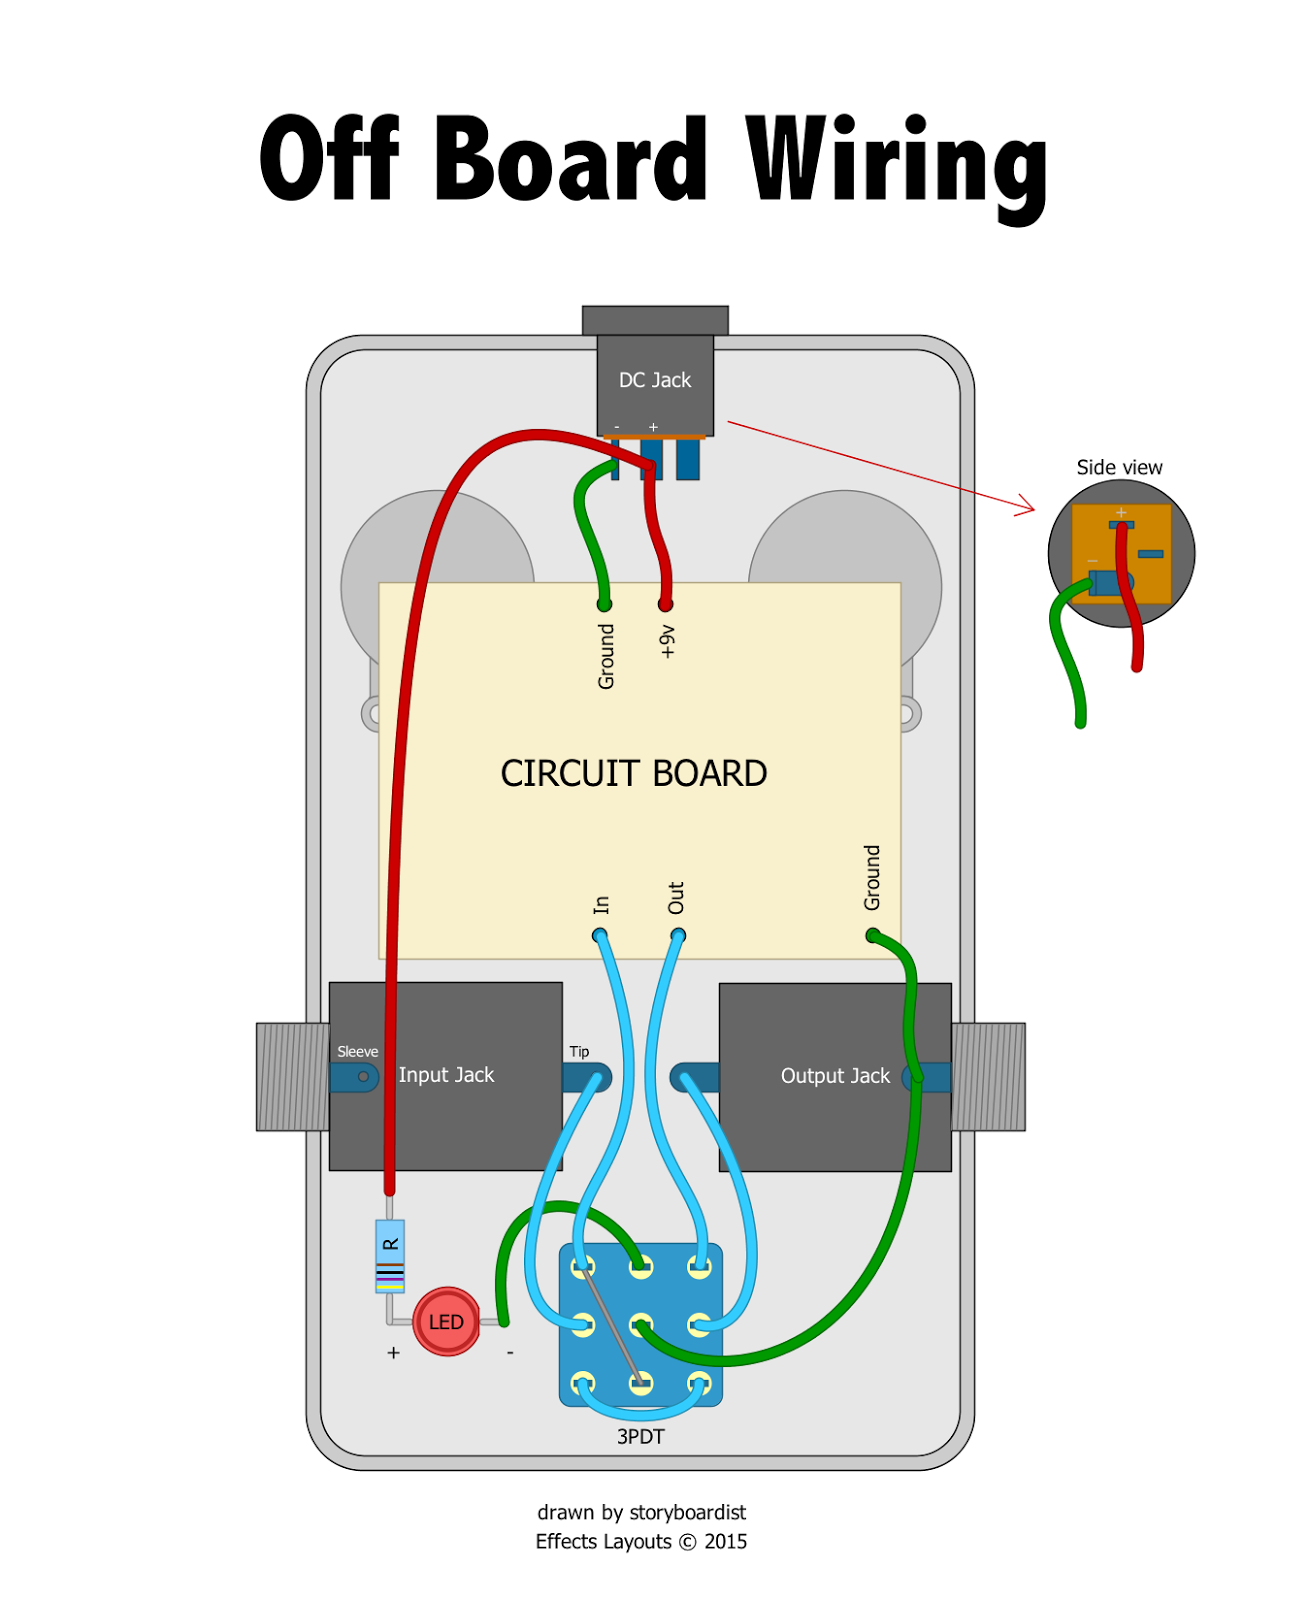 guitar effects wiring diagram guitar effects wiring diagrams perf and pcb effects layouts: general layout notes